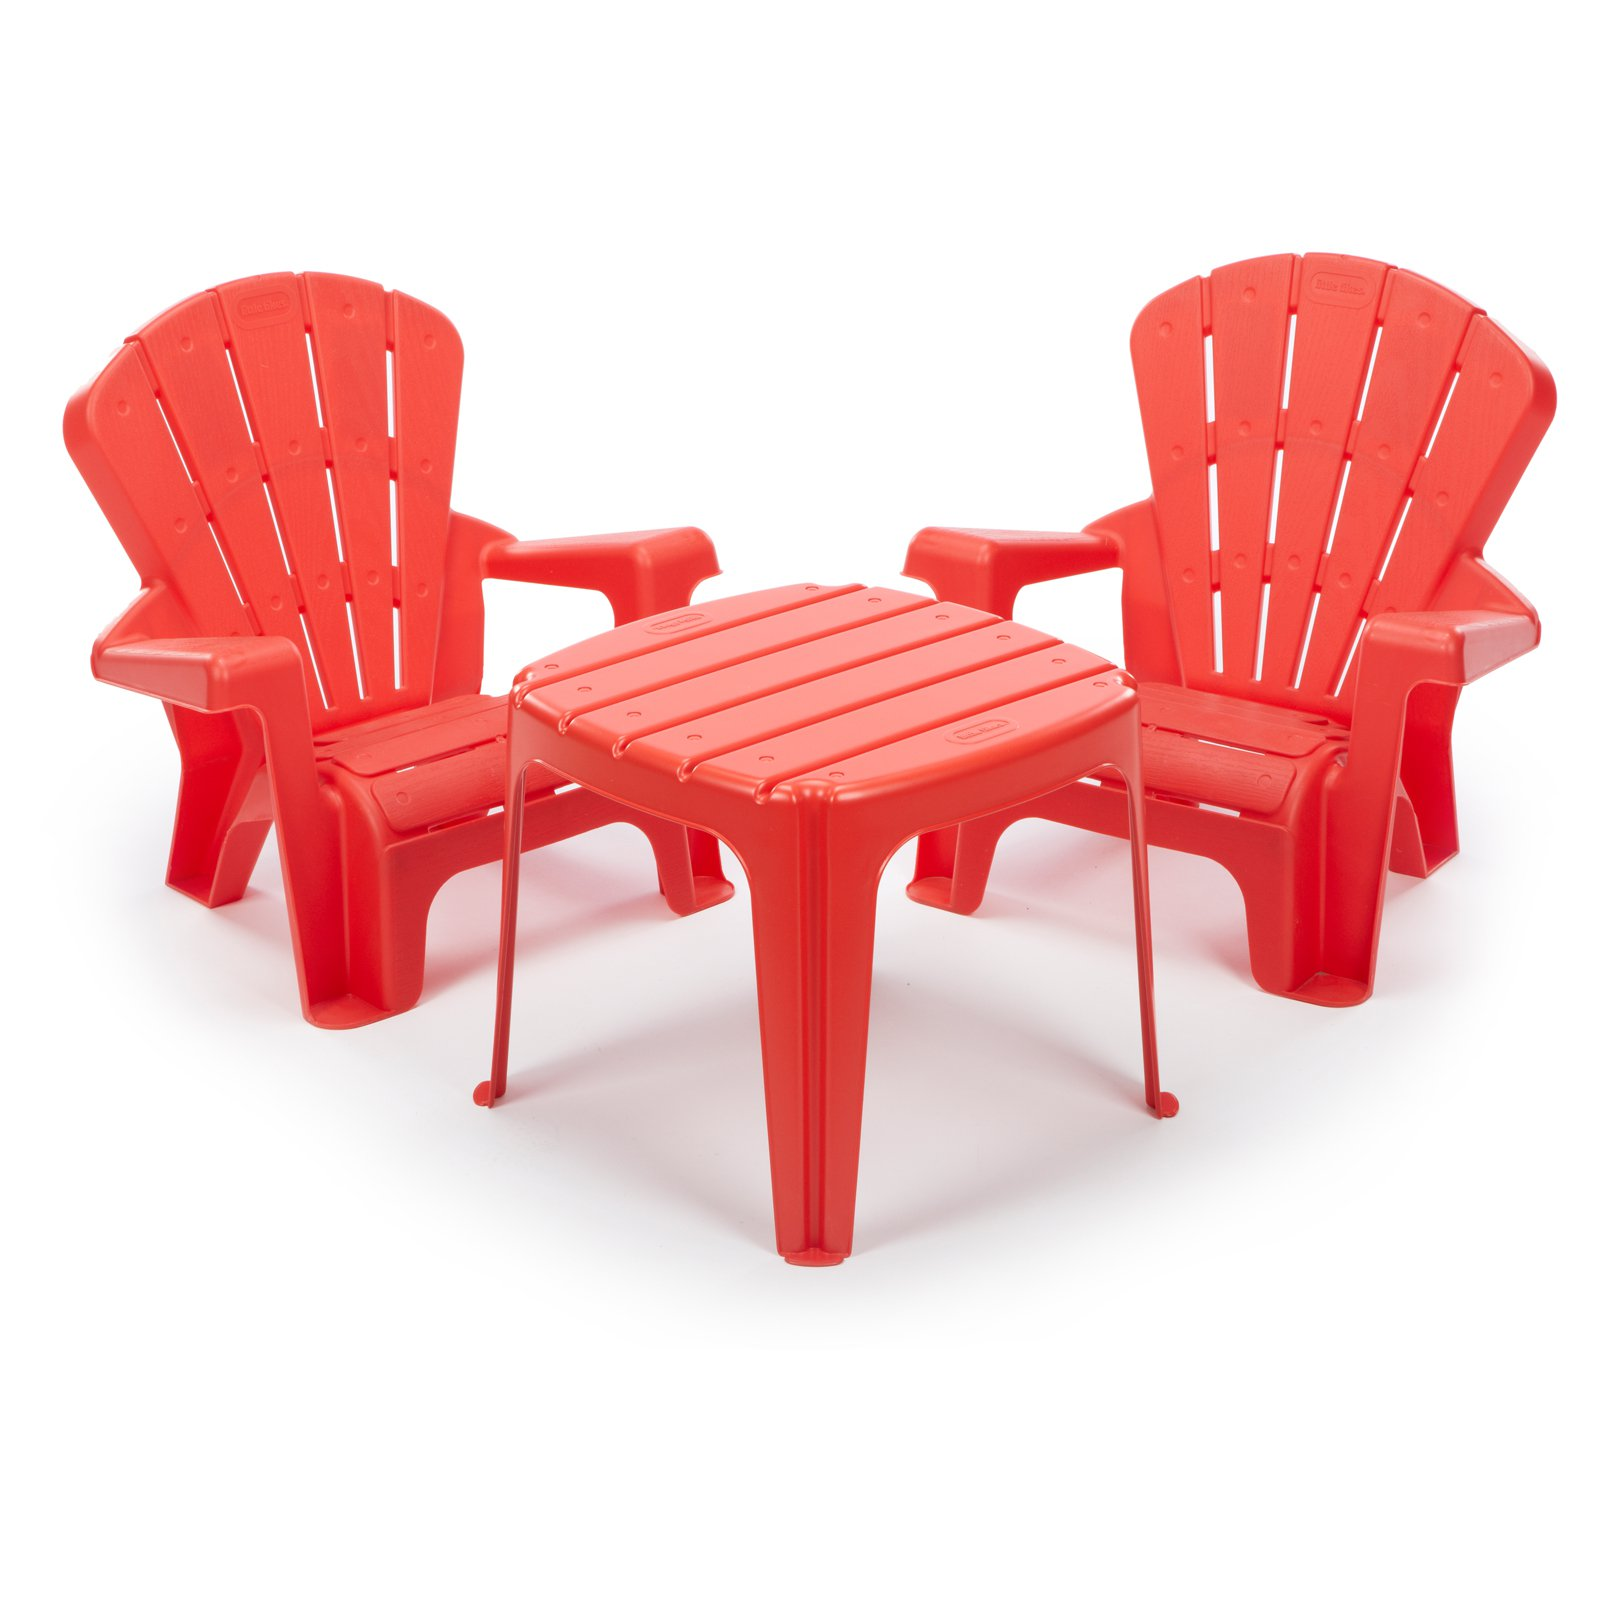 Outdoor Table And Chair Set Little Tikes Garden Table And Chairs Set Multiple Colors